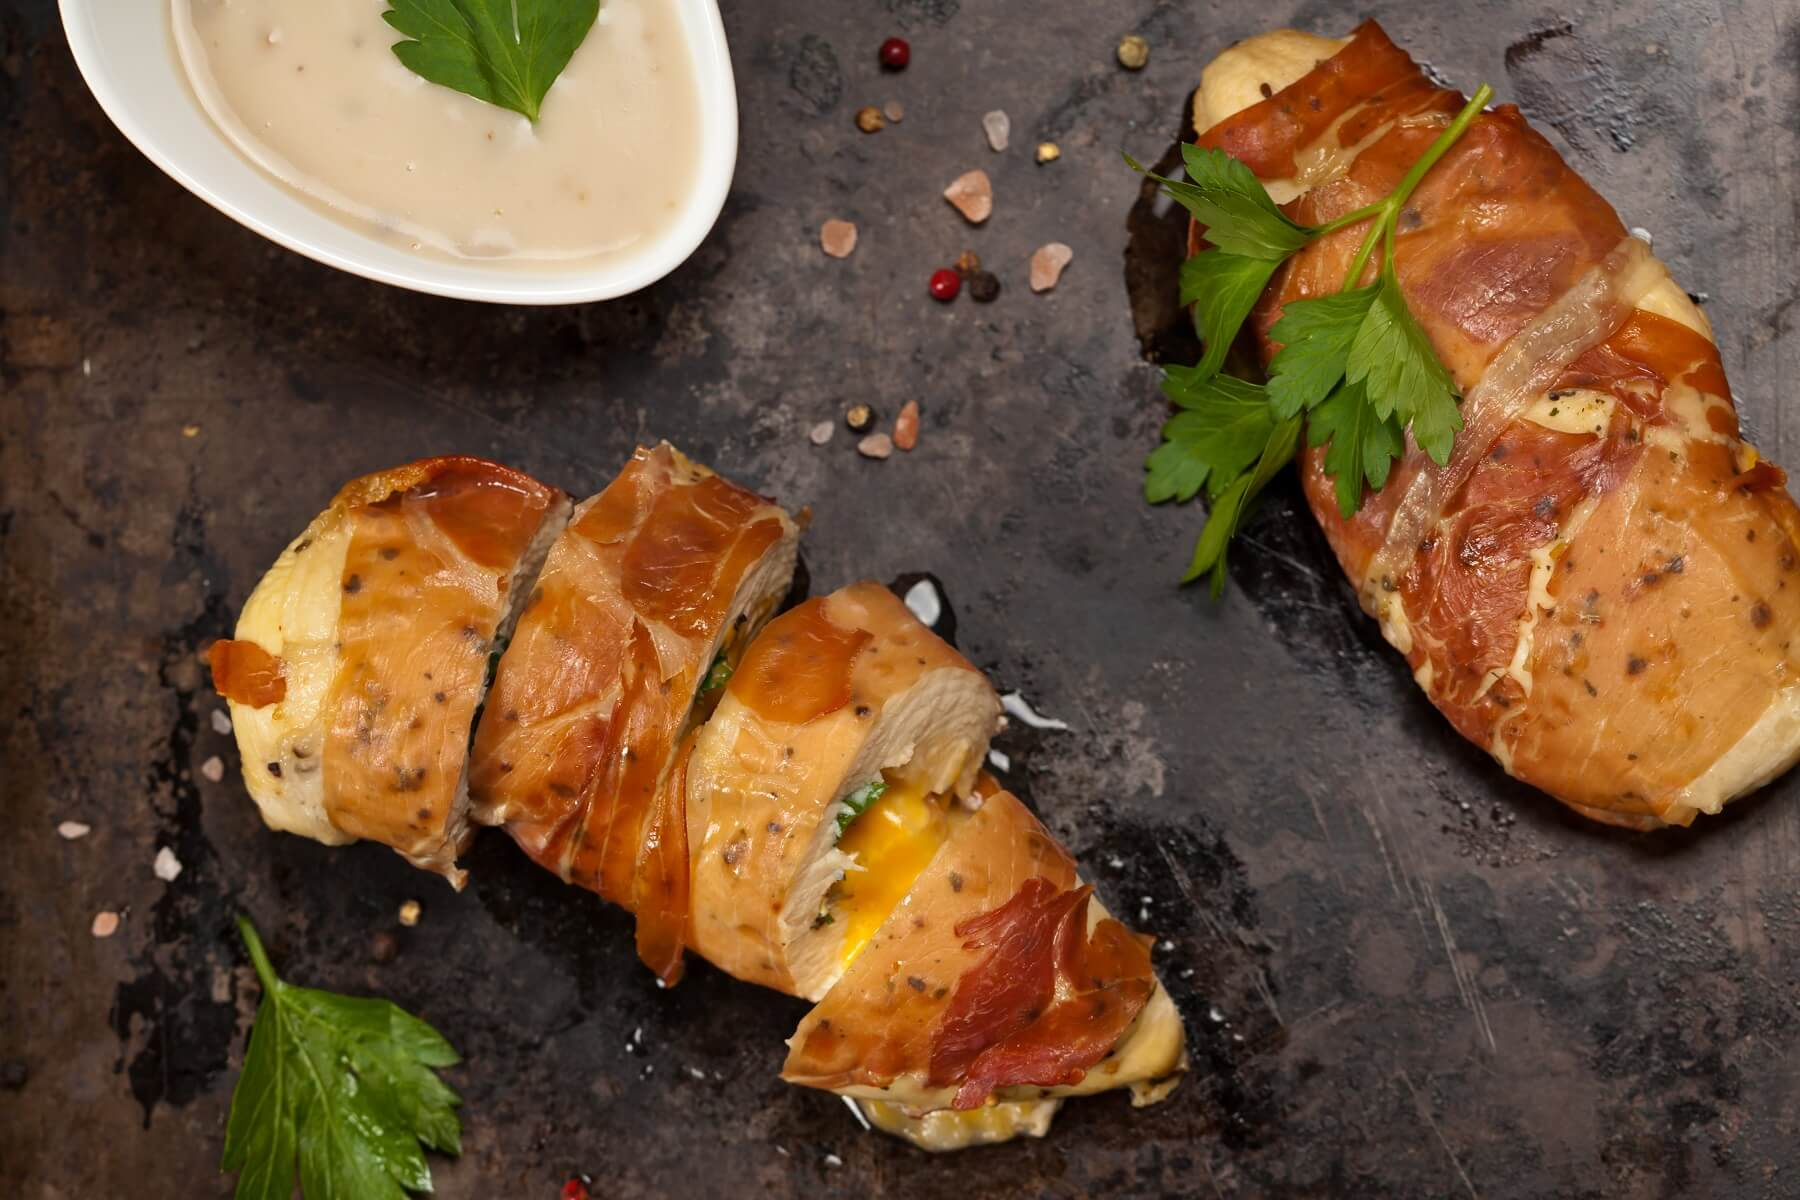 Mustard Stuffed Chicken Recipe